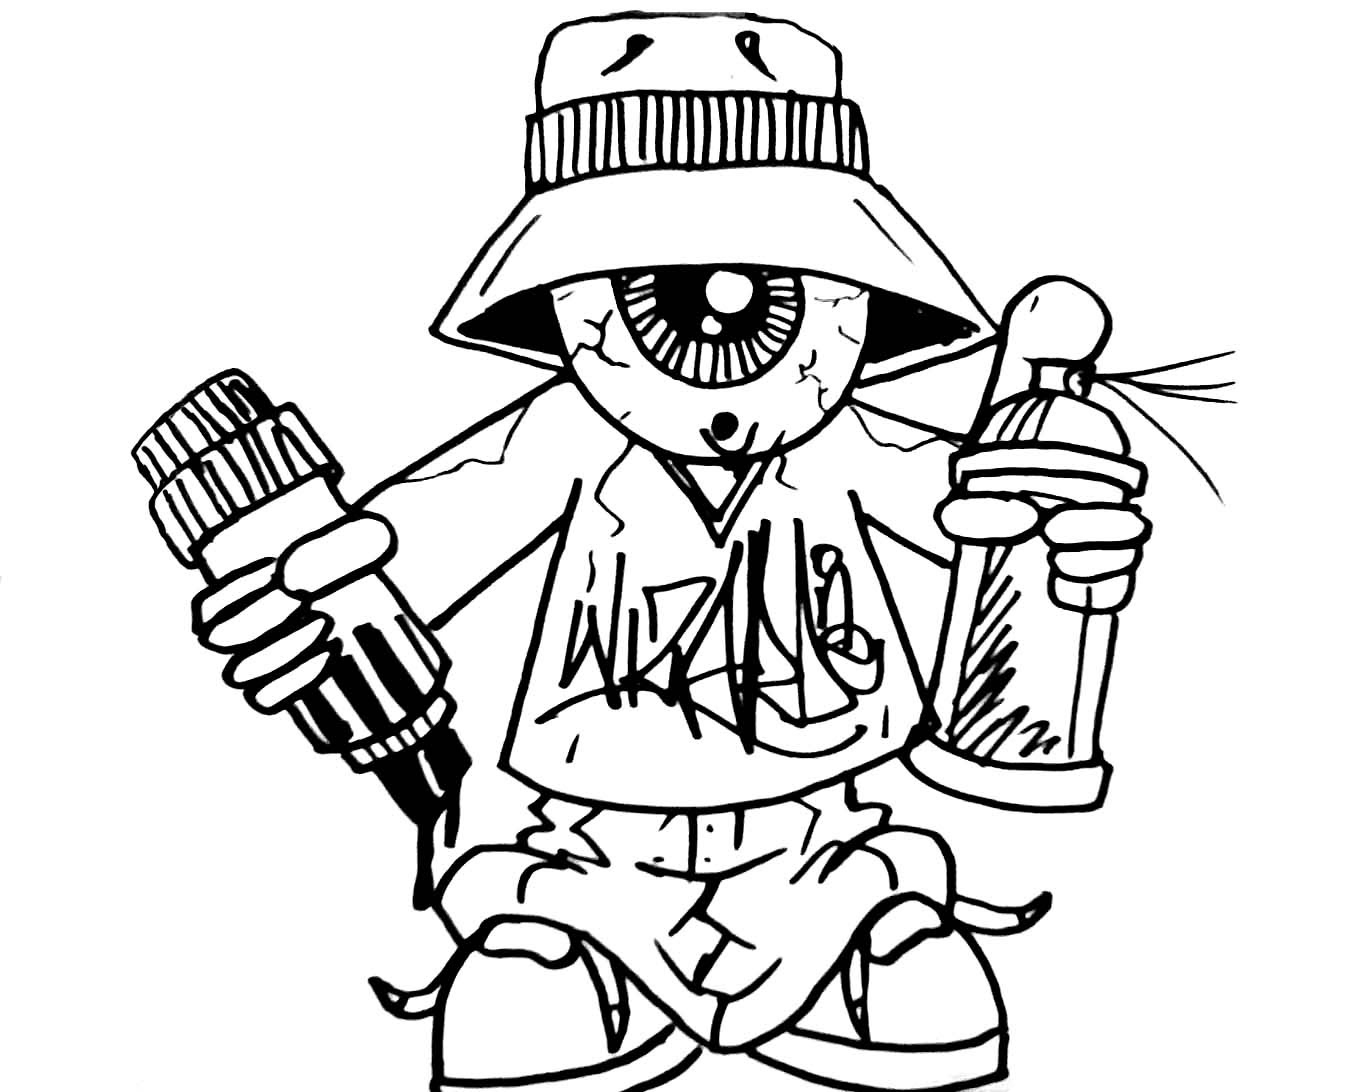 Graffiti Coloring Pages For Teens And Adults